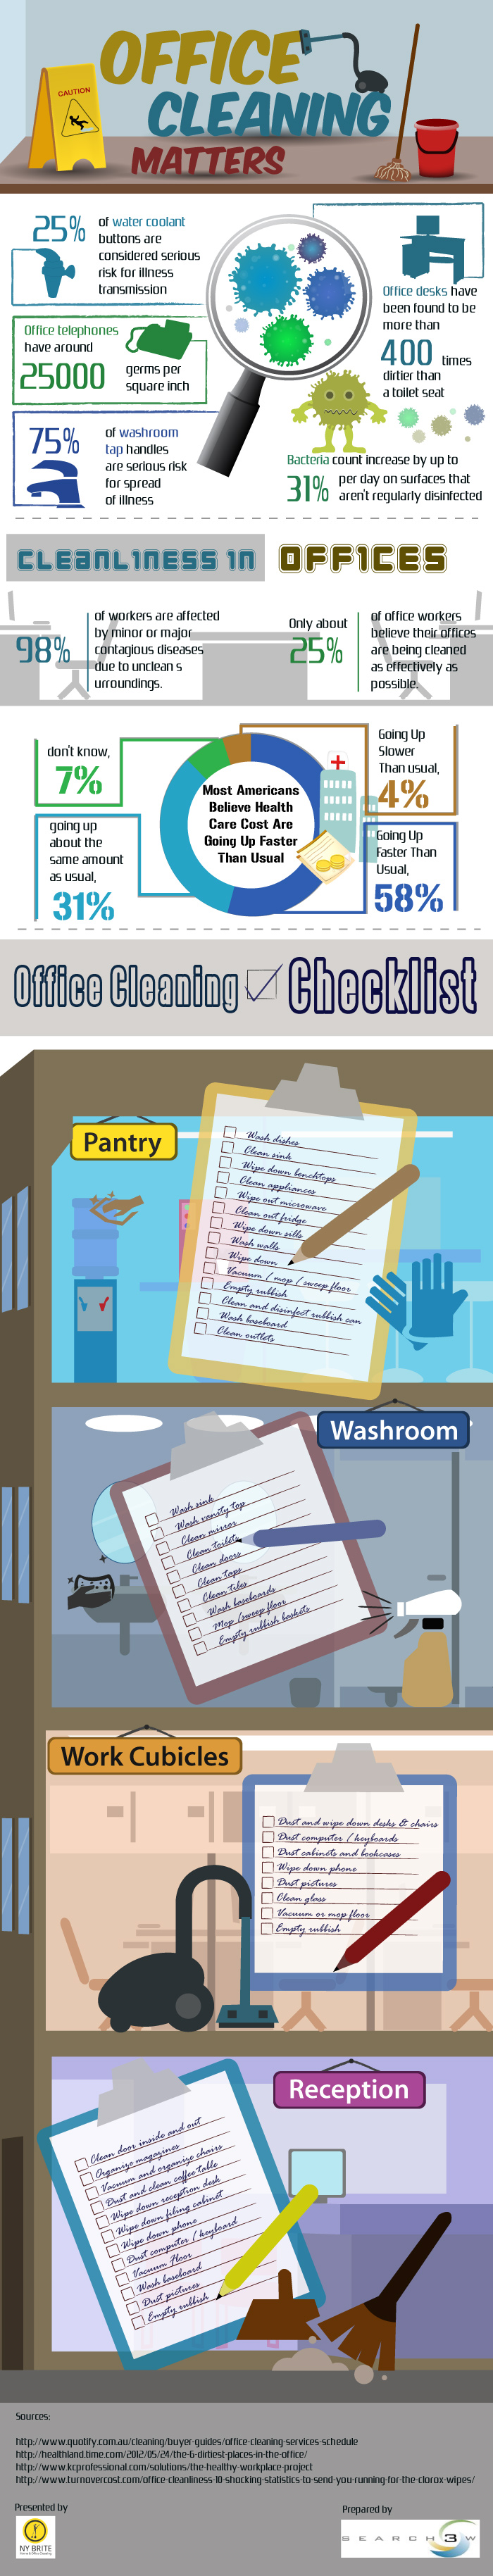 Office Cleaning Matters Infographic